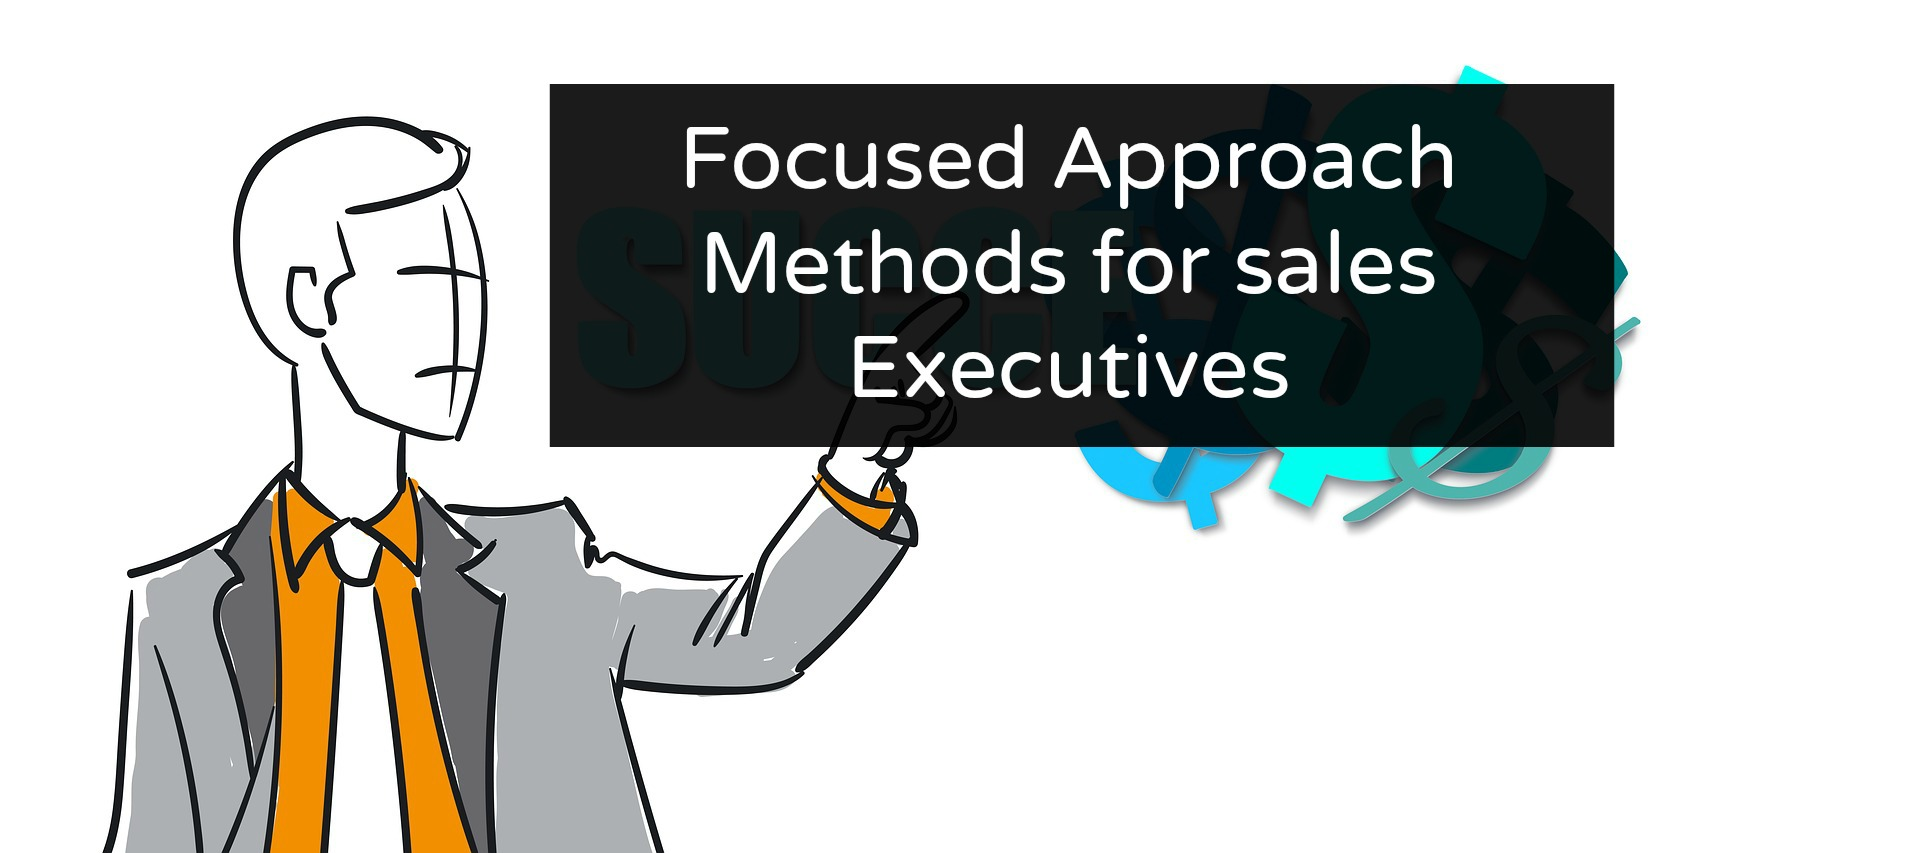 Focused Approach methods for sales executives